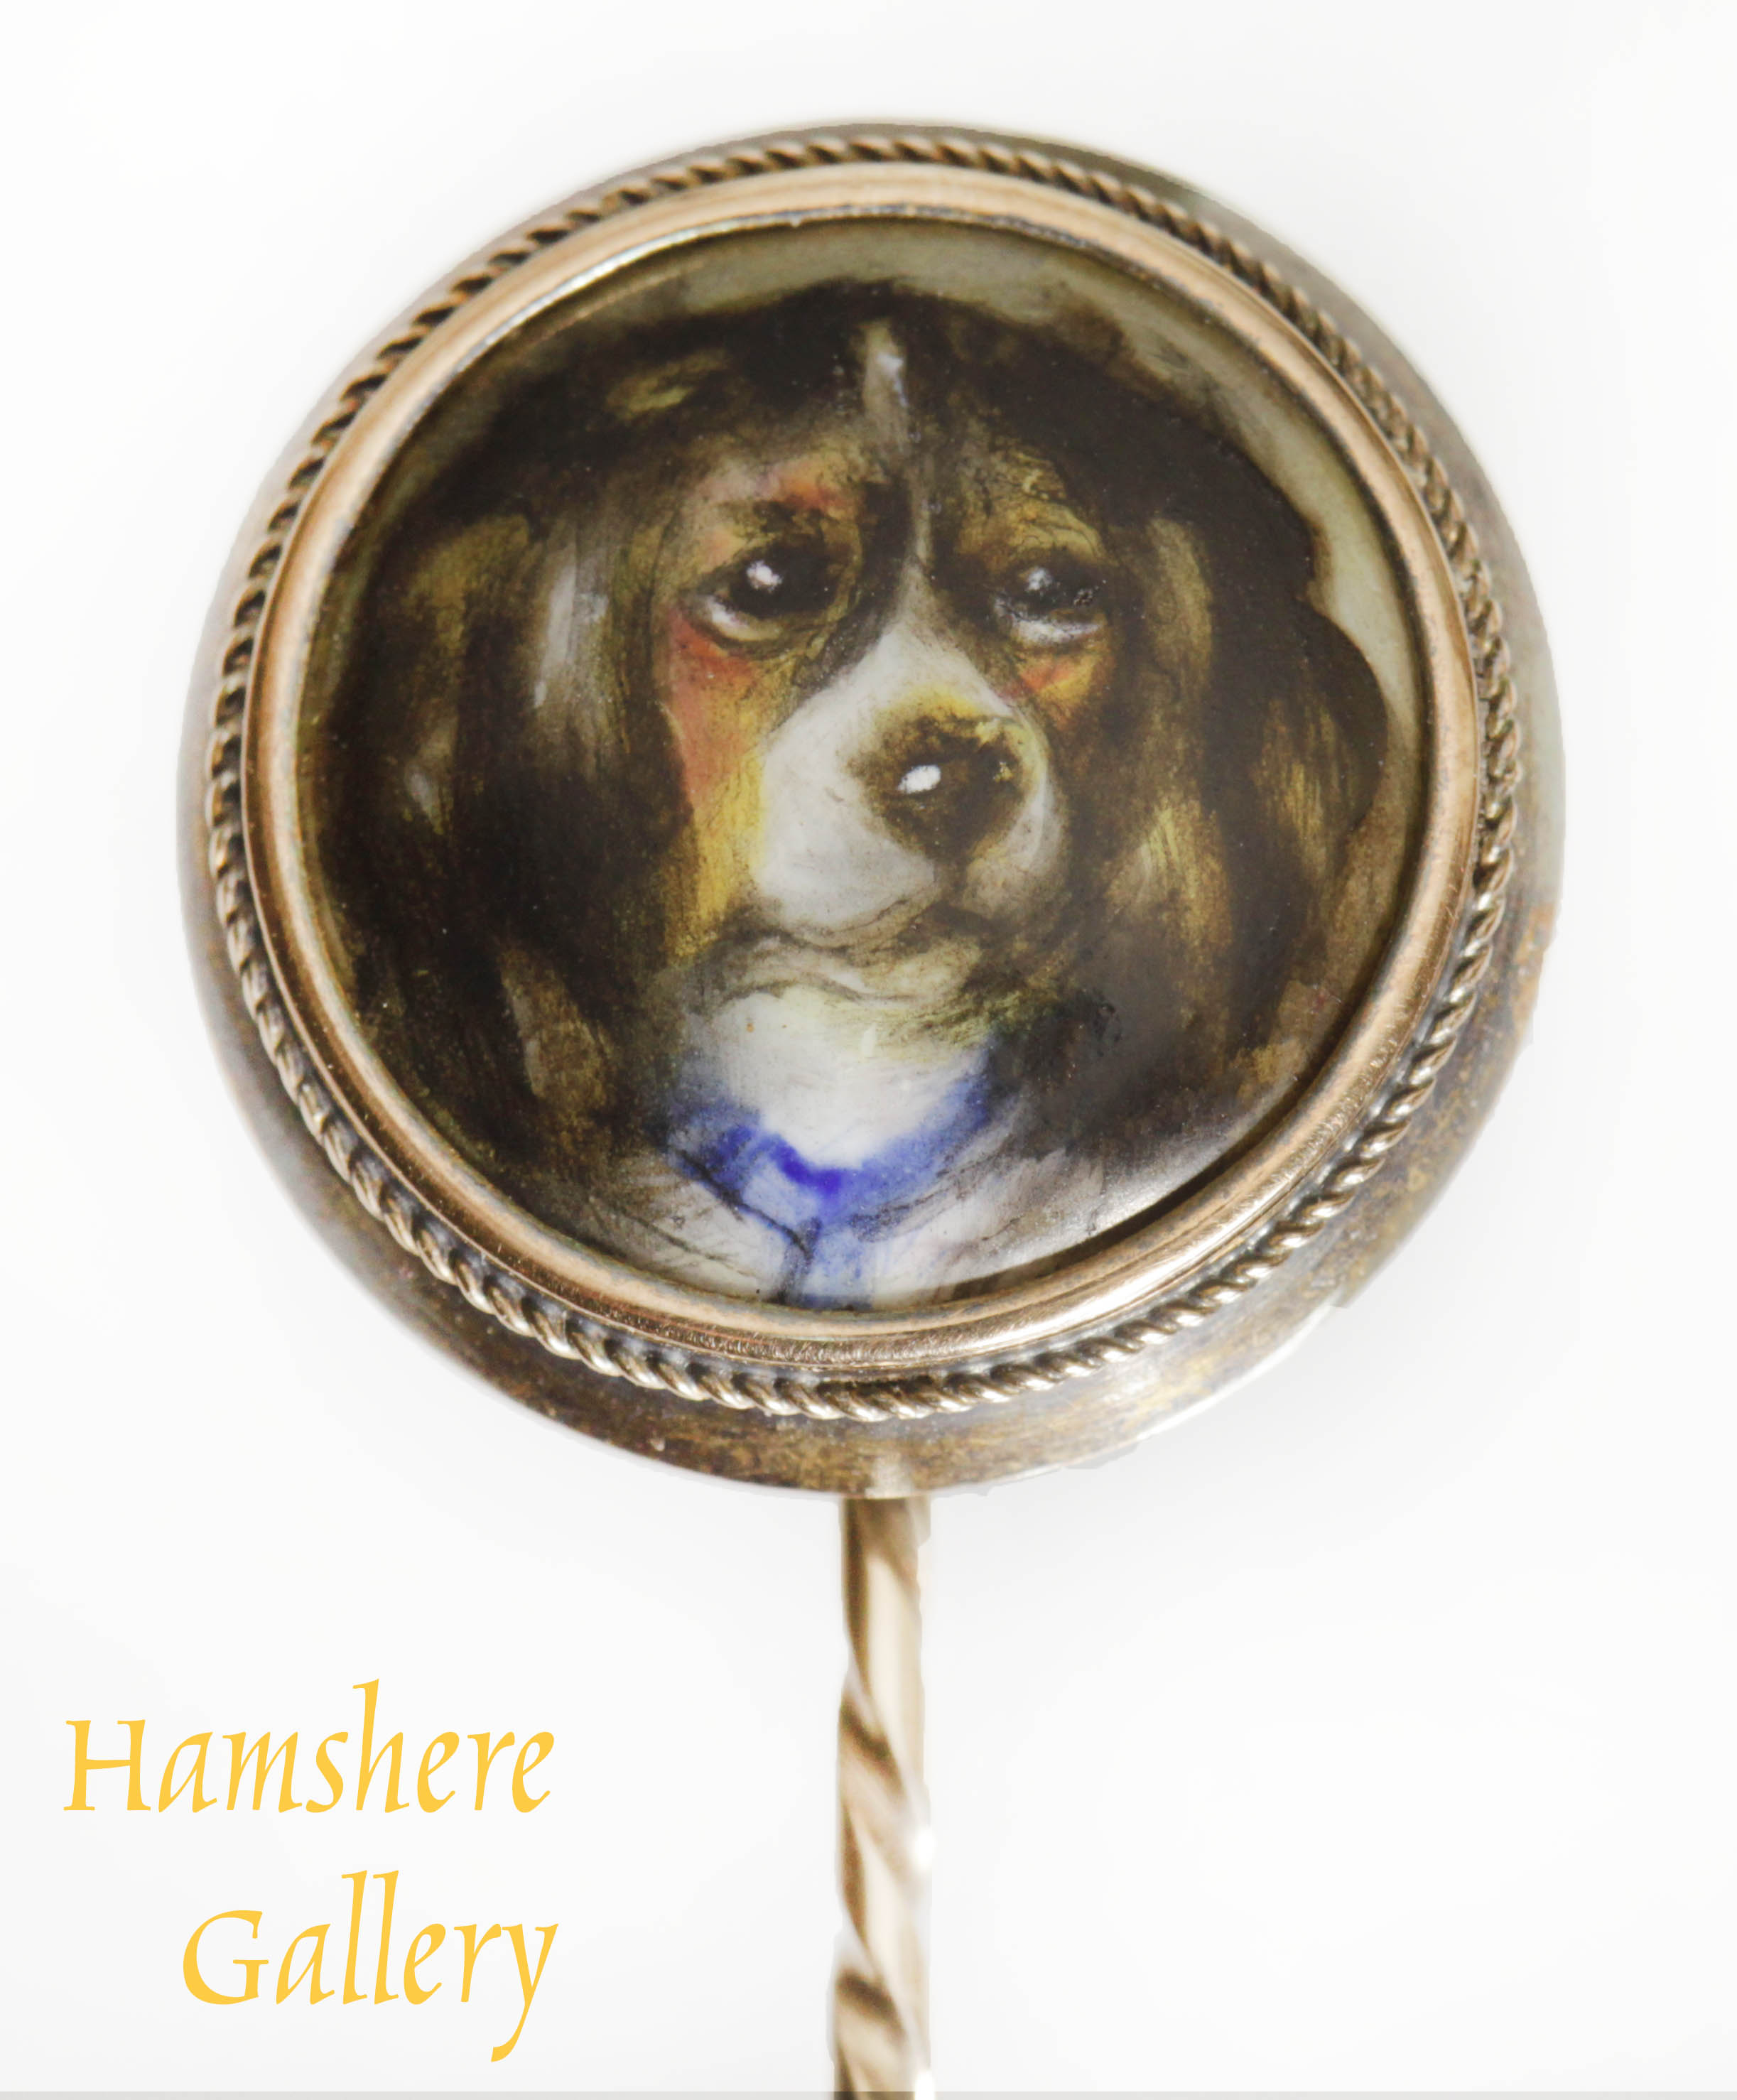 Click to see full size: Kings Charles Cavalier Tricolor Spaniel enamel gold stick pin by William Essex (English, 1784-1869)- Kings Charles Cavalier Tricolor Spaniel enamel gold stick pin by William Essex (English, 1784-1869)